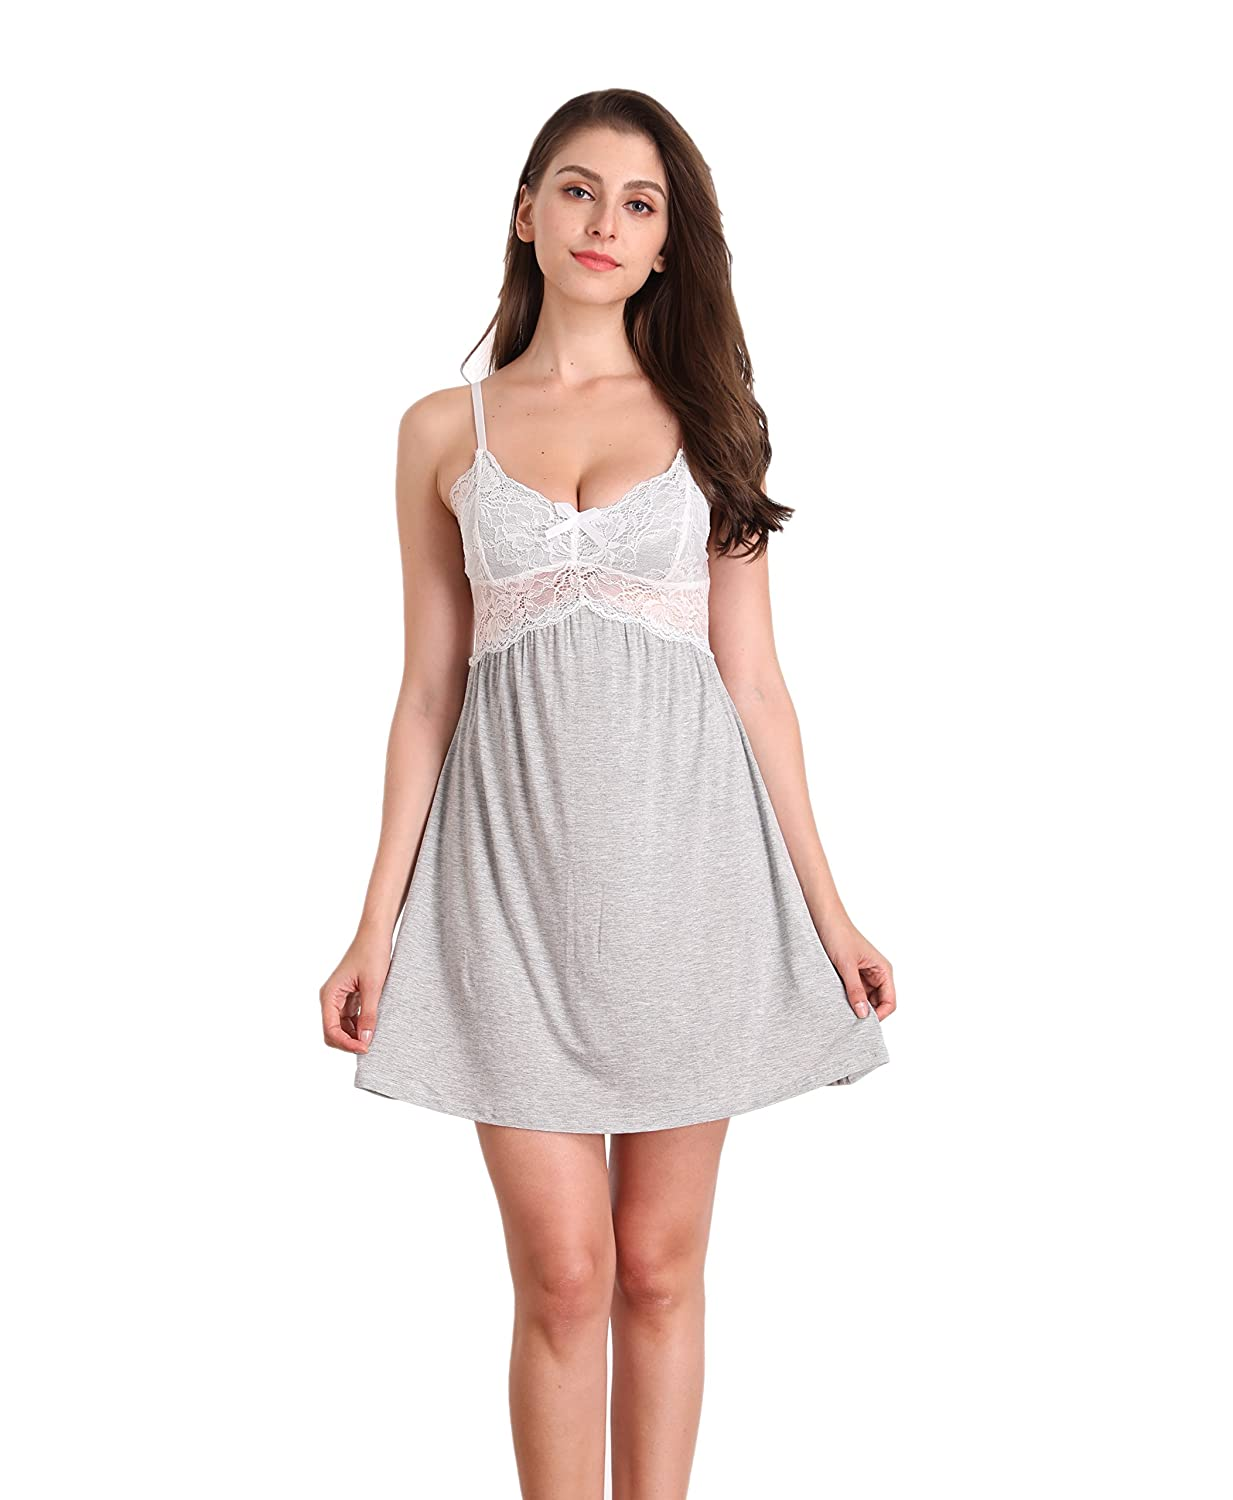 Memory baby Women's Sleepwear V-Neck Full Slips A Line Lace Sling Chemises Nightgown Dress S-XXL ZTFY0089